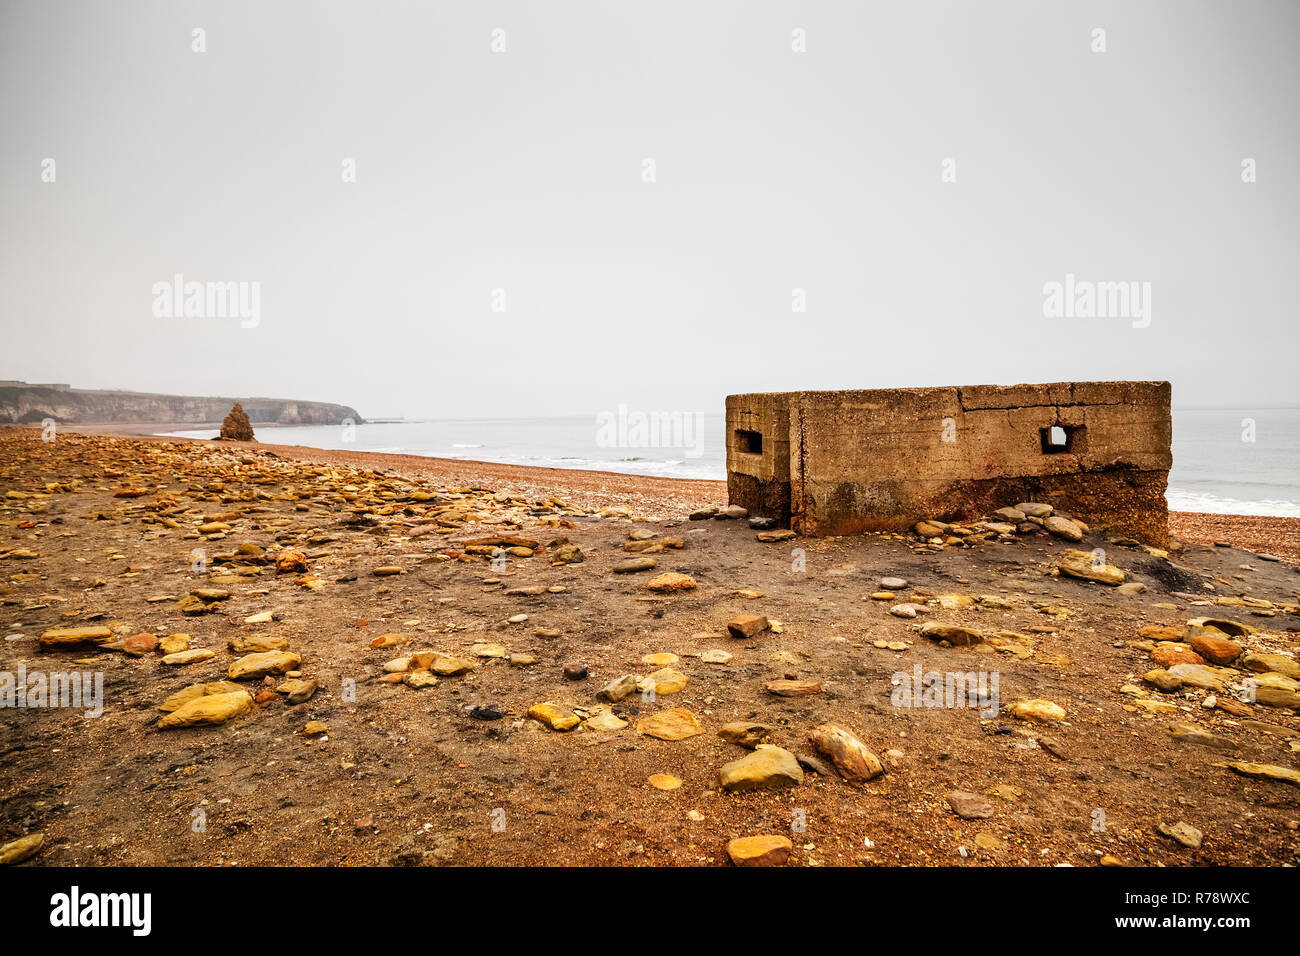 A World War 2 pill box on the coal waste polluted Blast Beach near Seaham, County Durham, UK - Stock Image